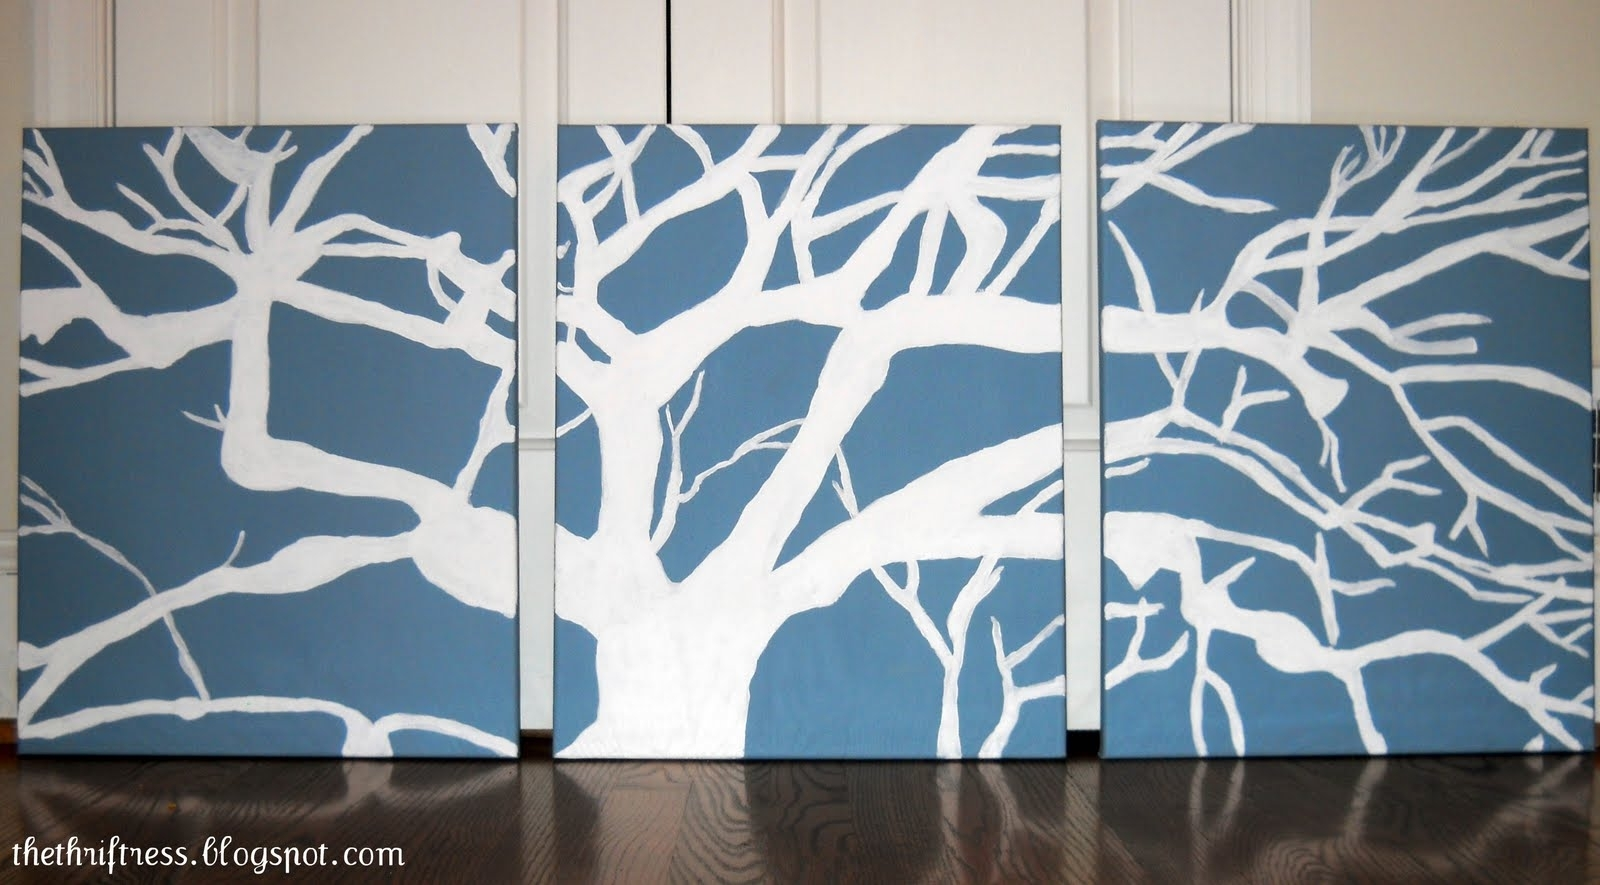 Diy Wall Art Stencils Paint Fabric – Dma Homes | #37854 For Most Recently Released Fabric Panels For Wall Art (Gallery 12 of 15)